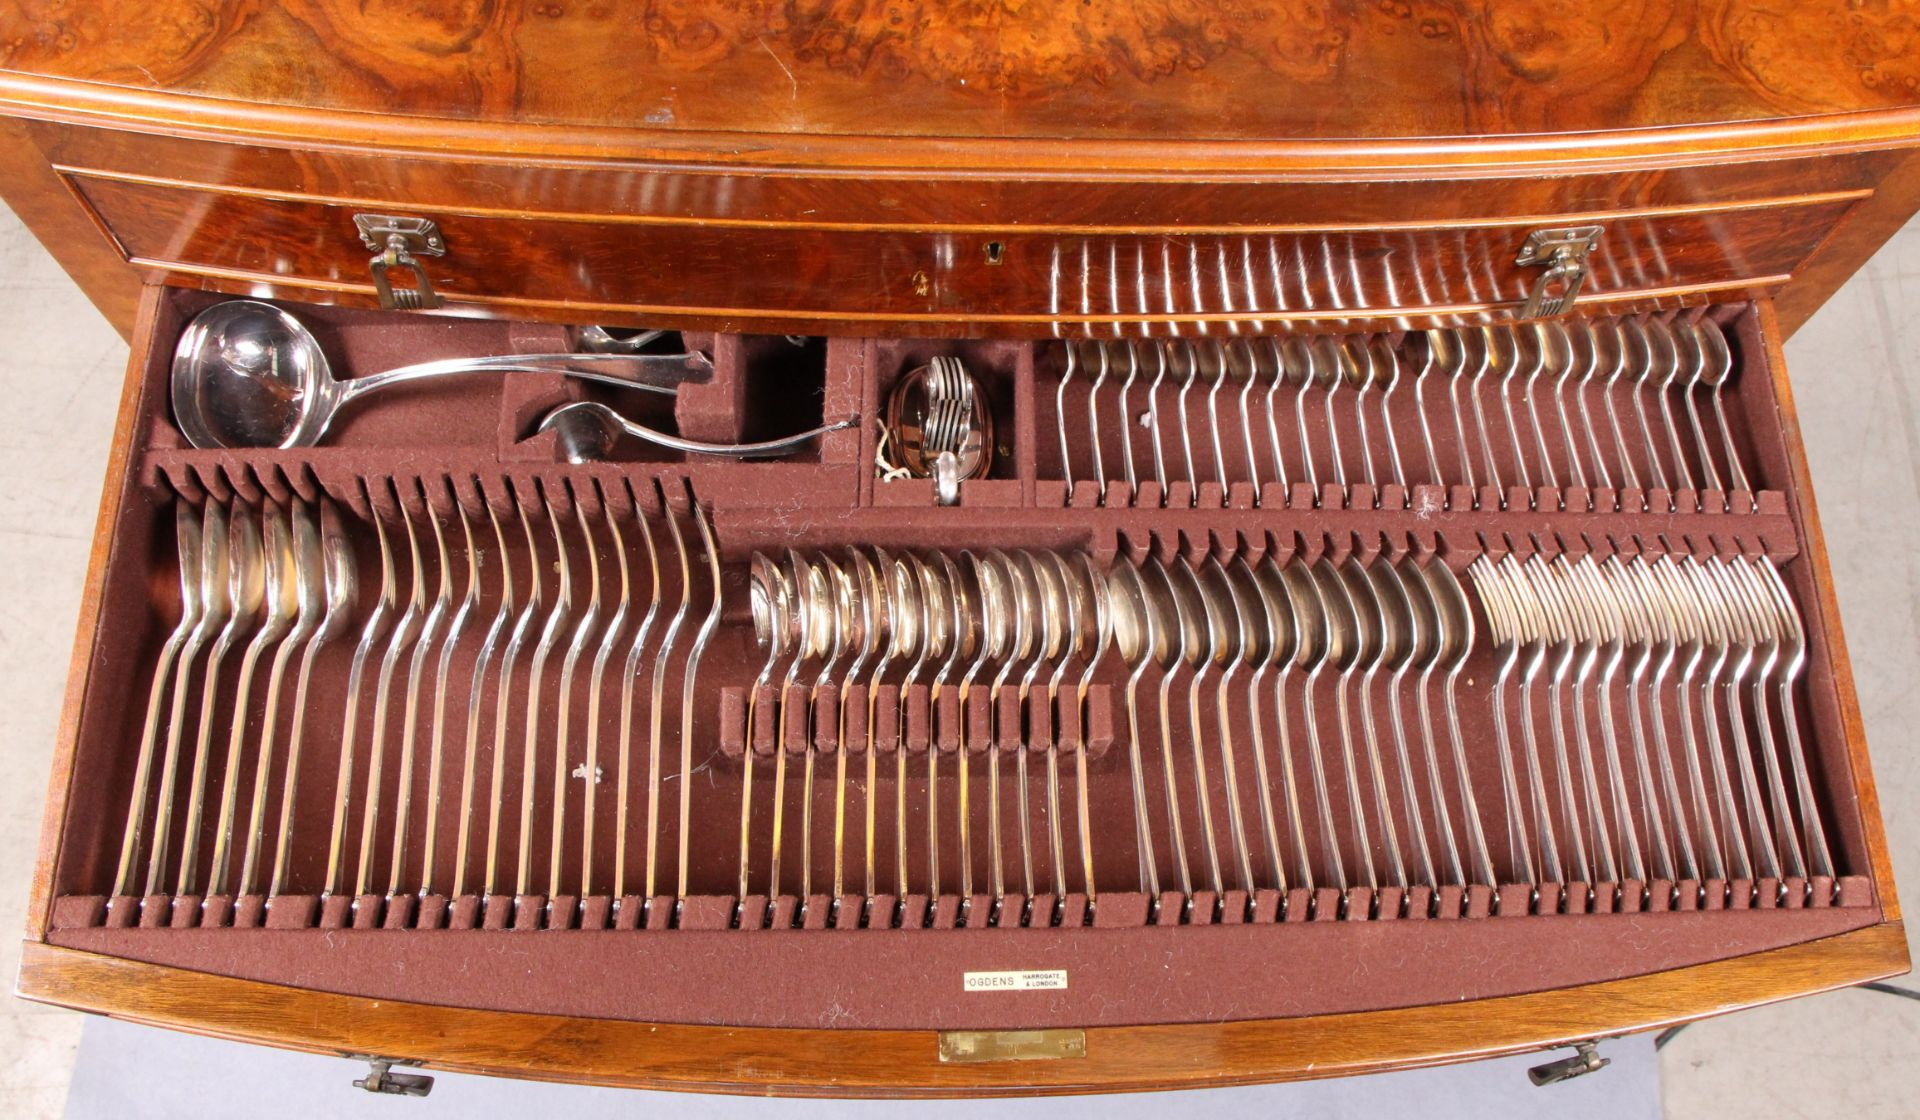 Lot 14 - A comprehensive suite of table cutlery, twelve place settings, in a fitted, figured walnut,